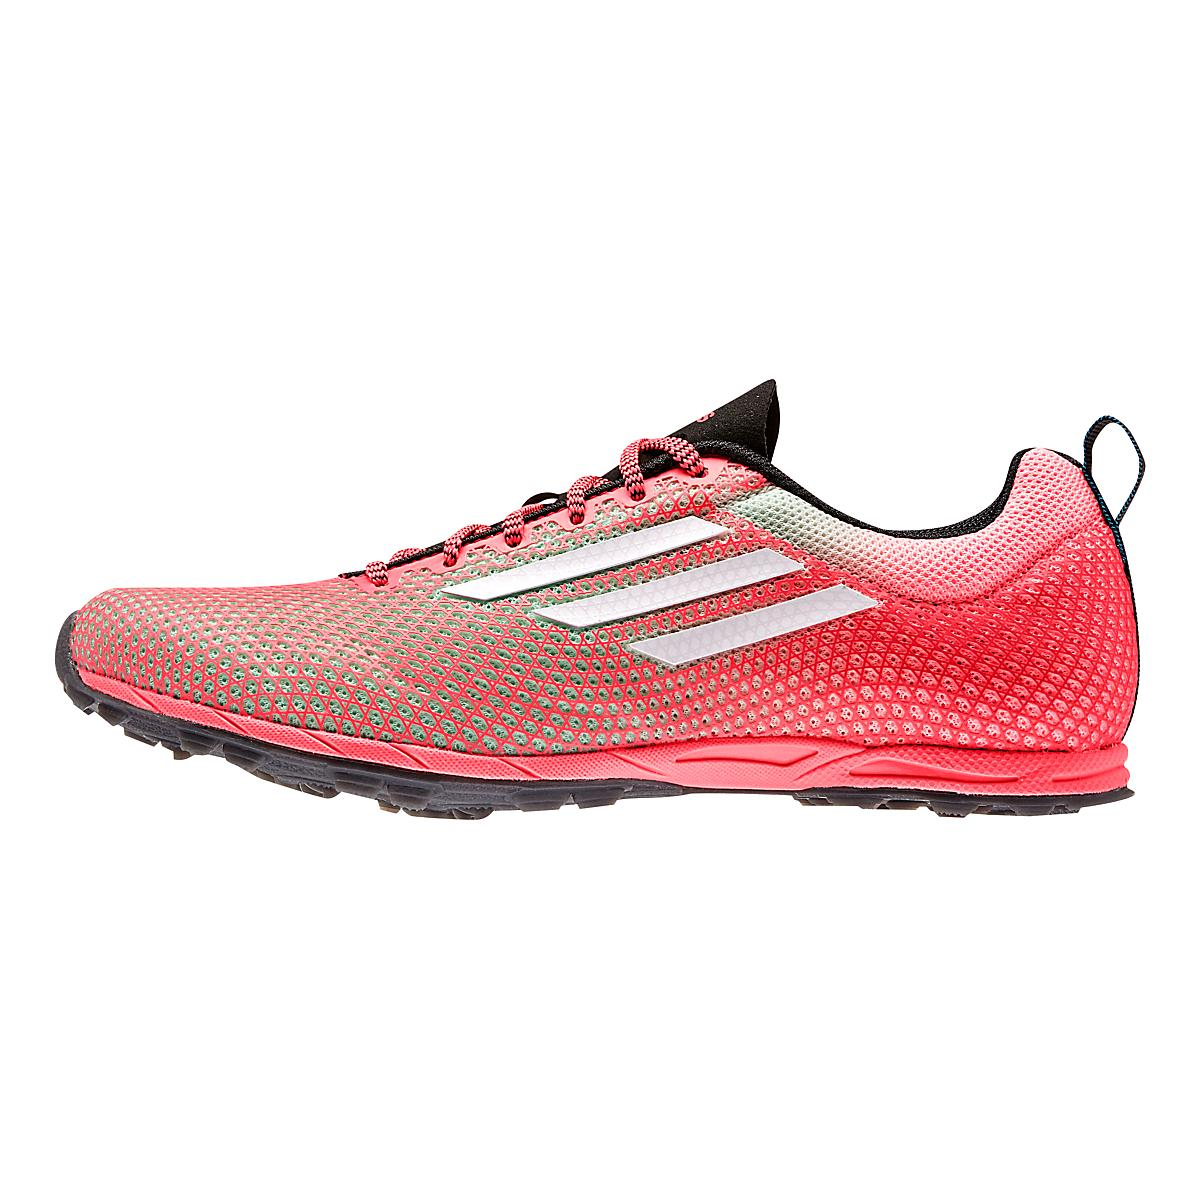 3dc4f9b90842 Womens adidas XCS 5 - Spikes Cross Country Shoe at Road Runner Sports